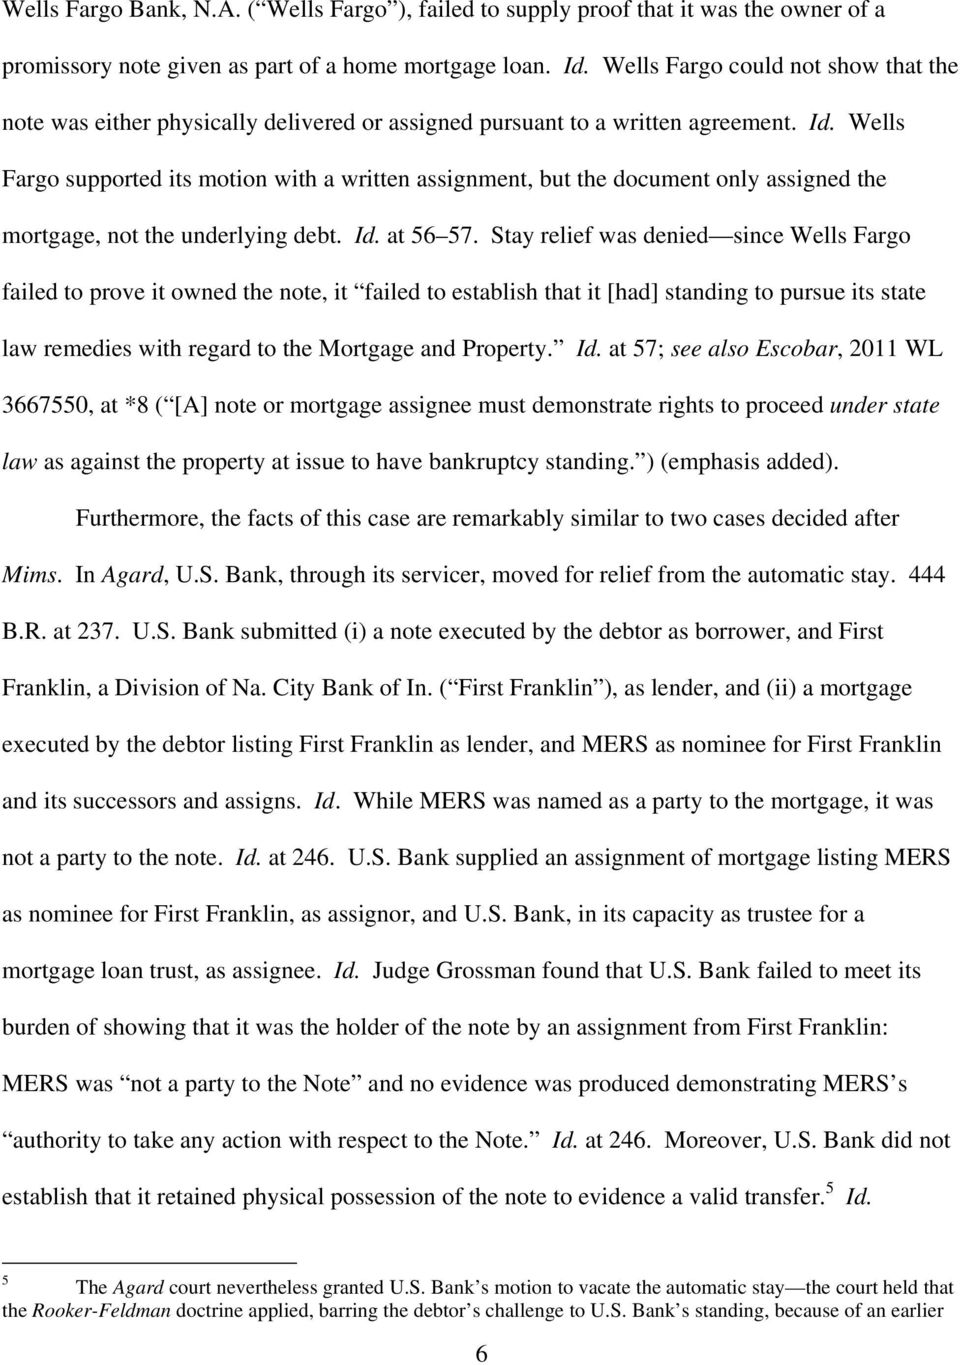 Wells Fargo supported its motion with a written assignment, but the document only assigned the mortgage, not the underlying debt. Id. at 56 57.